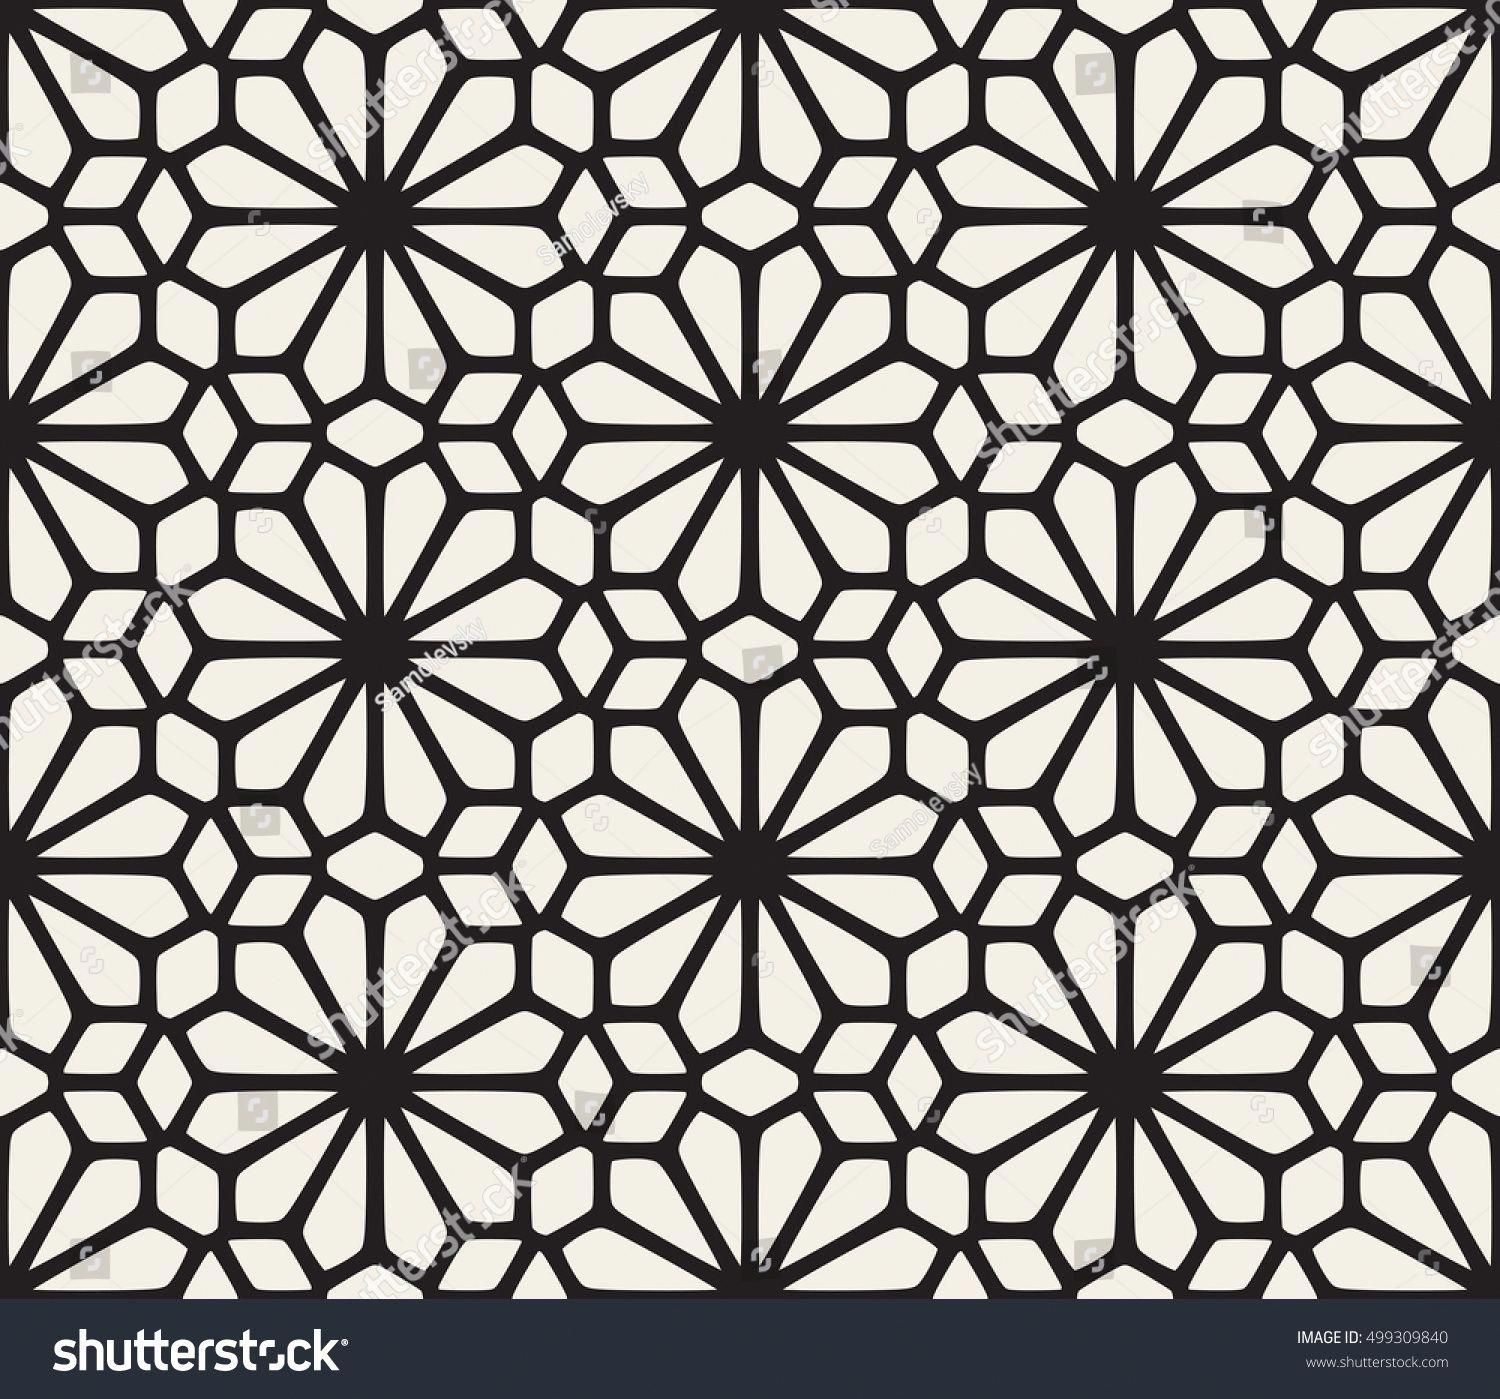 Vector Seamless Black And White Lace Floral Pattern Abstract Geometric Background Design Geometri Geometric Background Geometric Sleeve Tattoo Pattern Tattoo